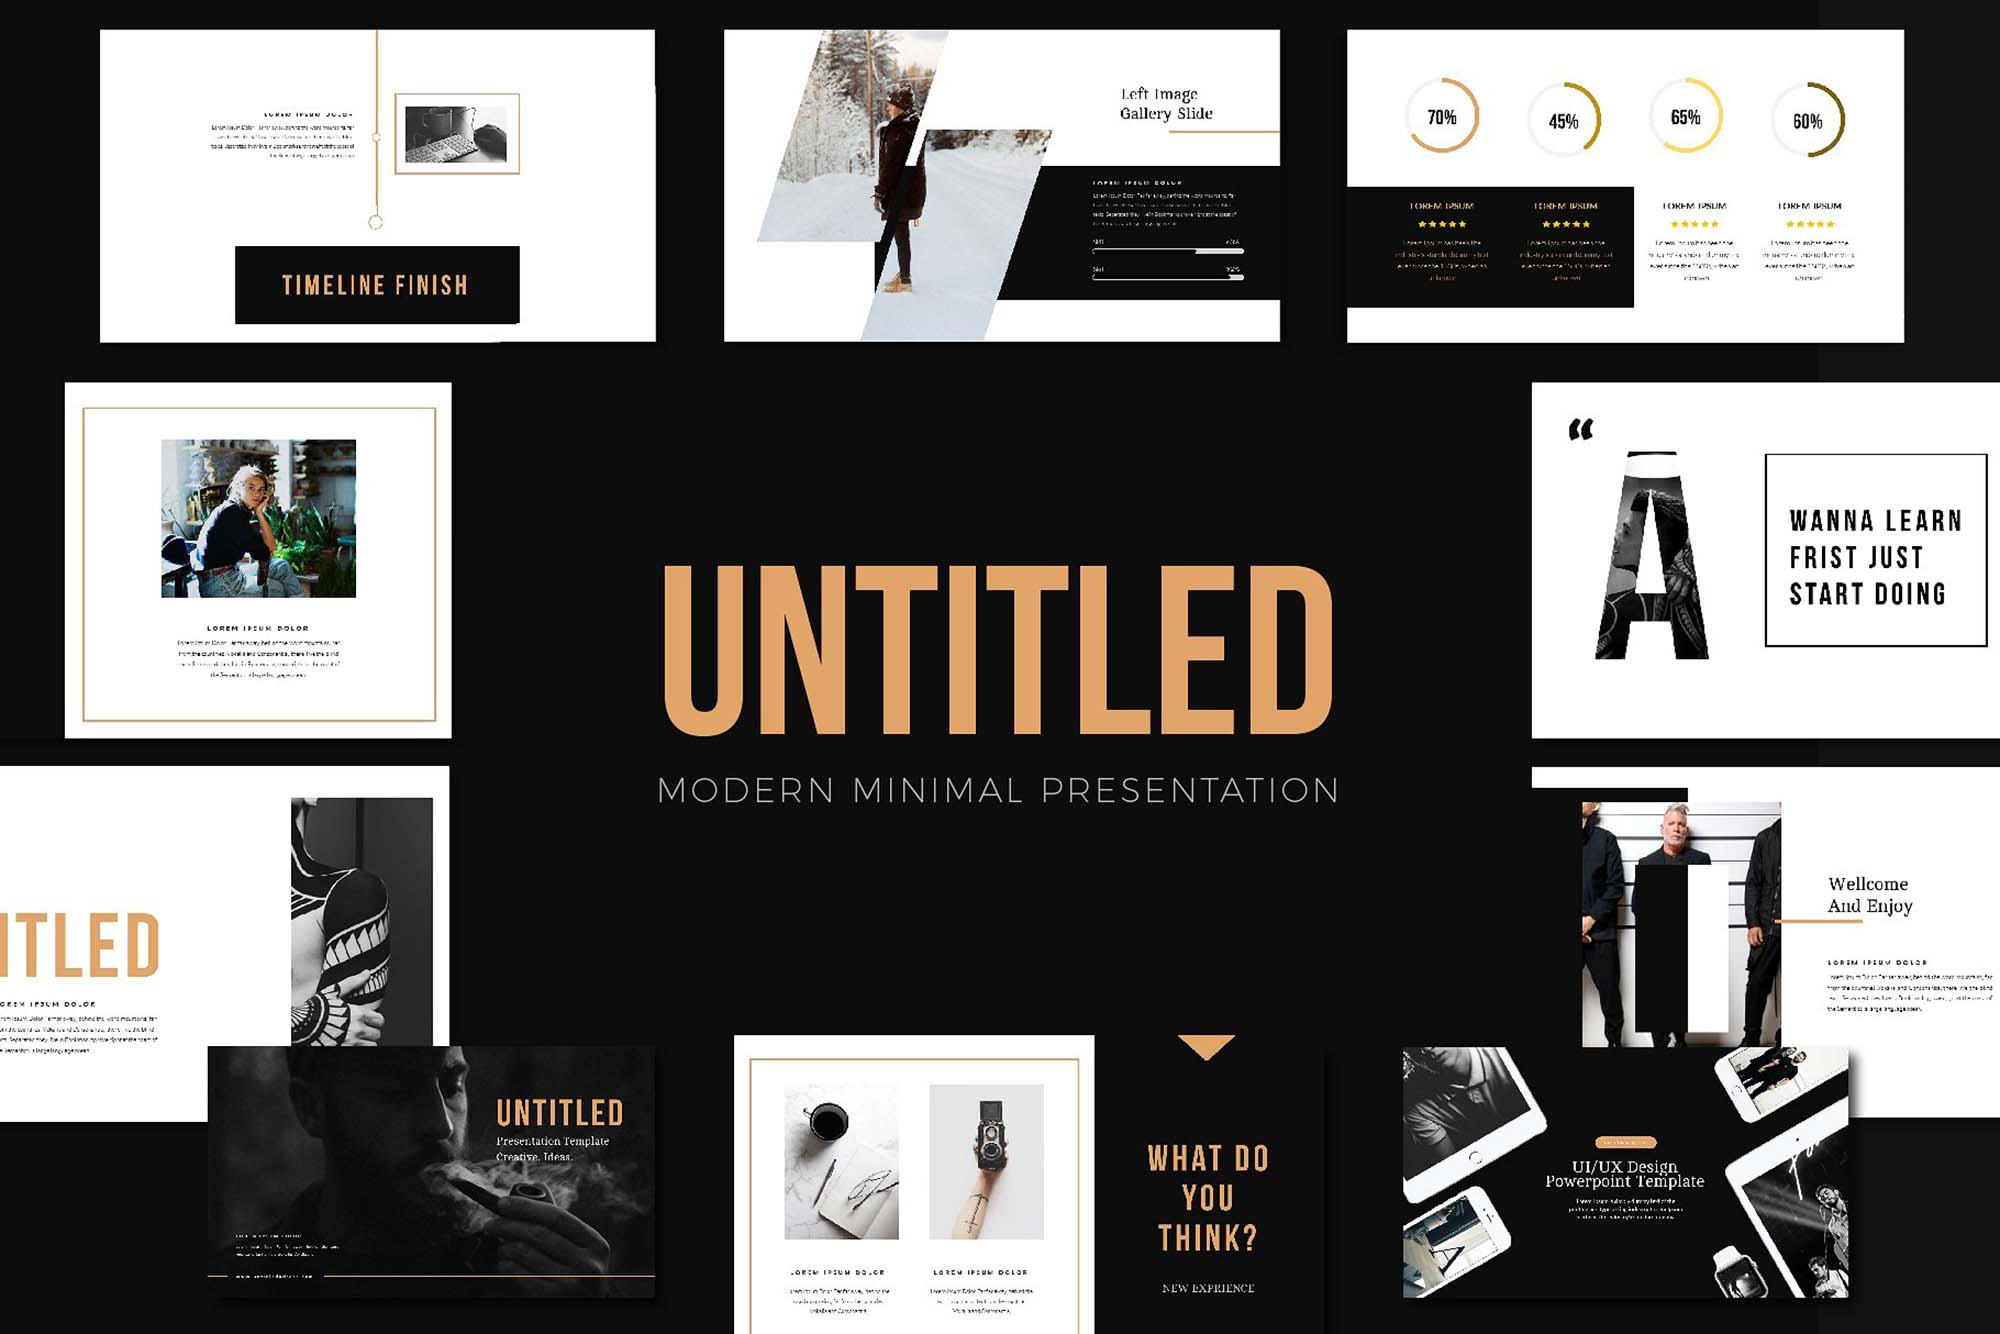 untitled free powerpoint presentation template